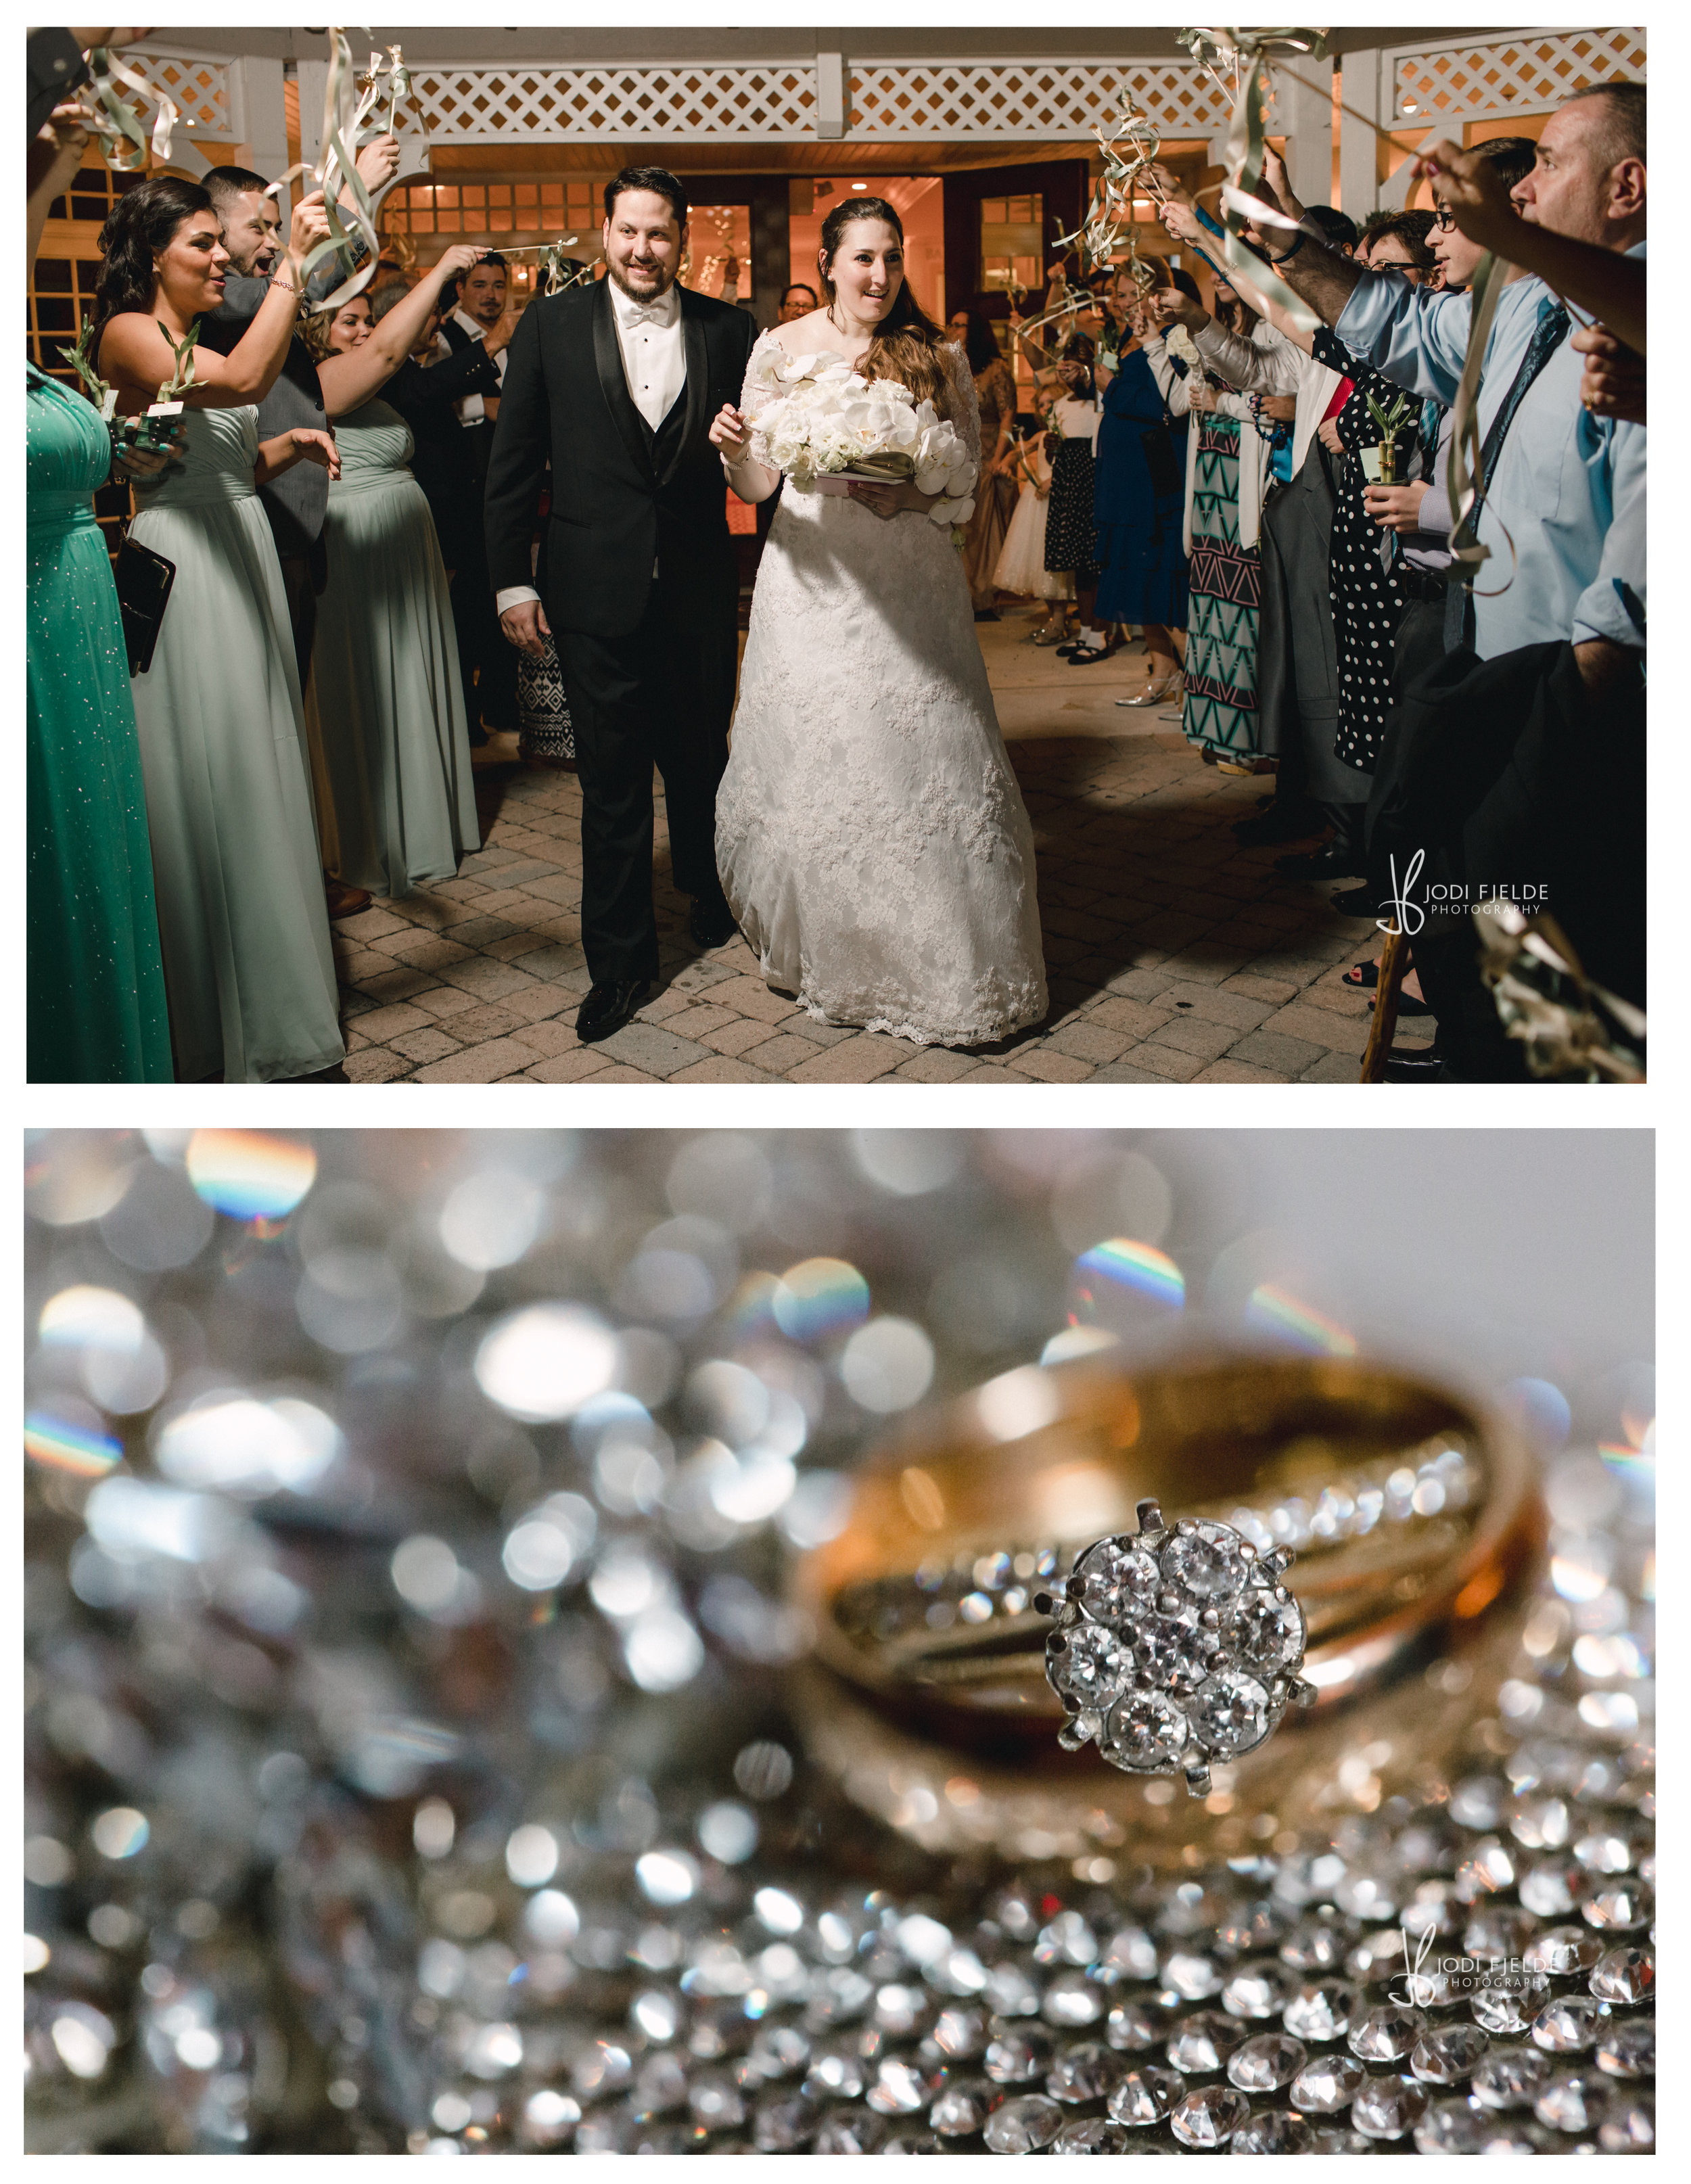 Deer_Creek_Country_Club_Wedding_Jodi_Fjelde_Photography_Andrea_Jason_28.jpg